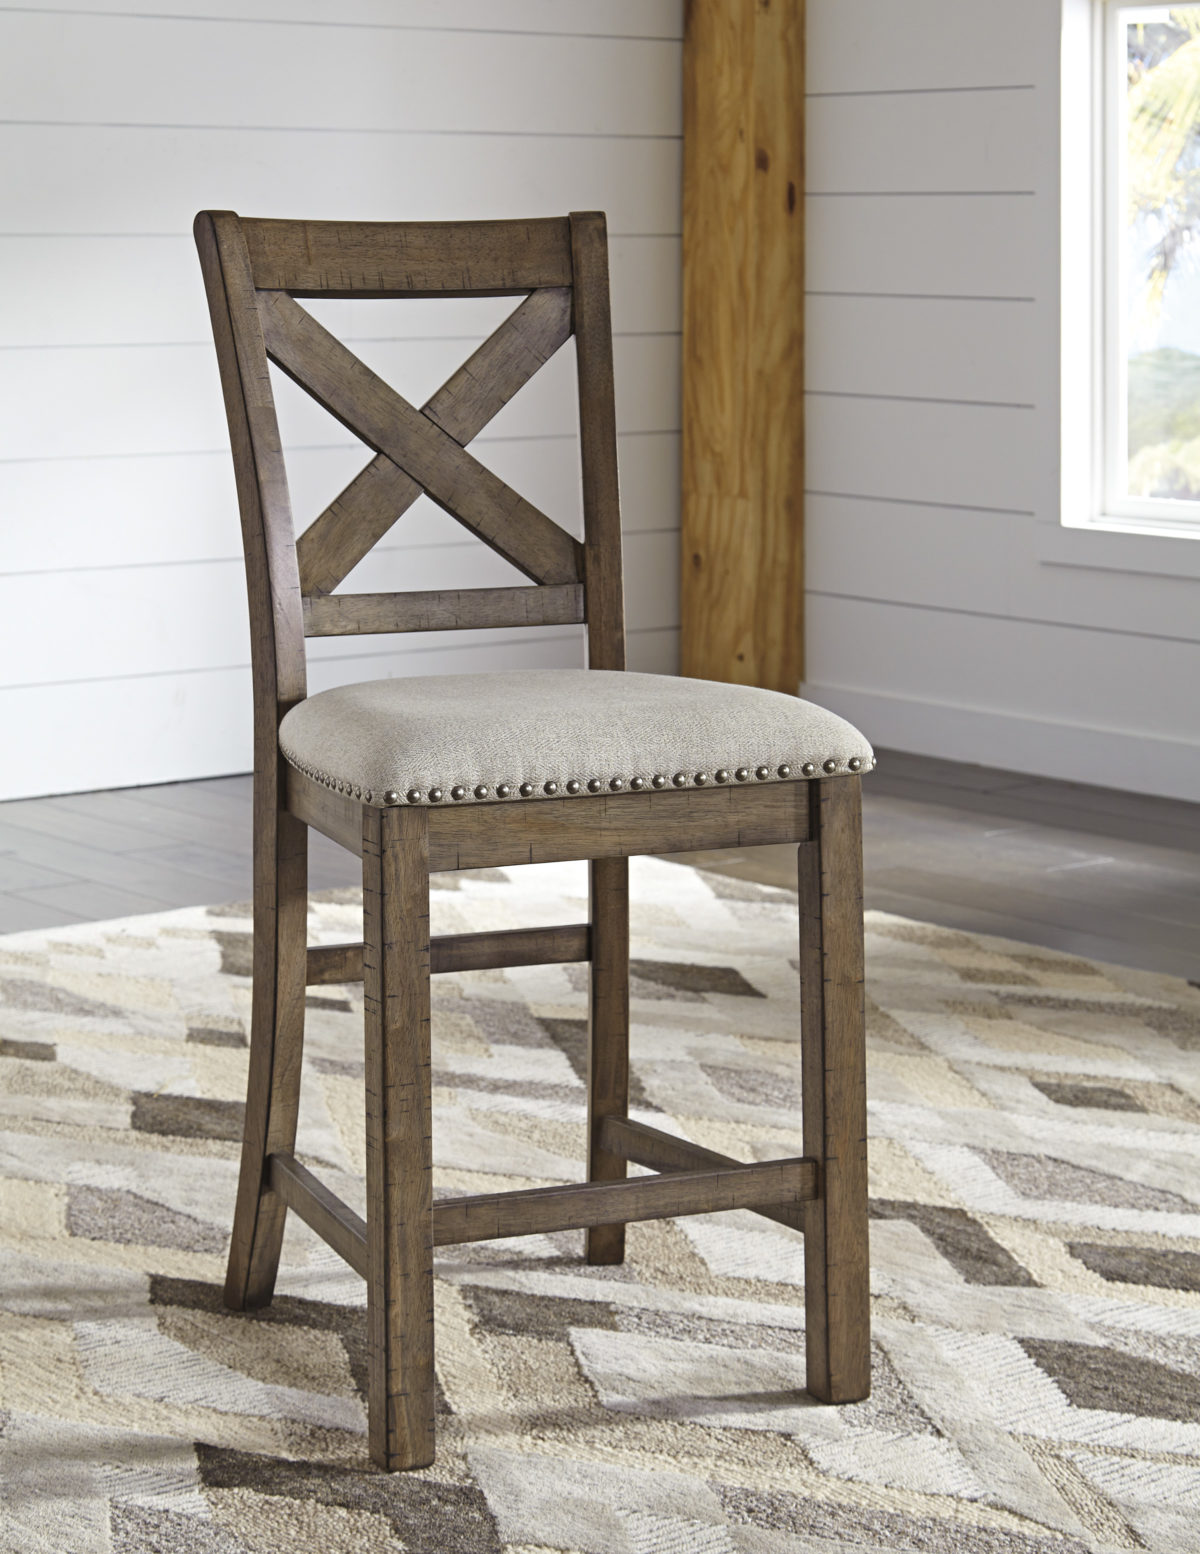 Moriville Chair D631-124